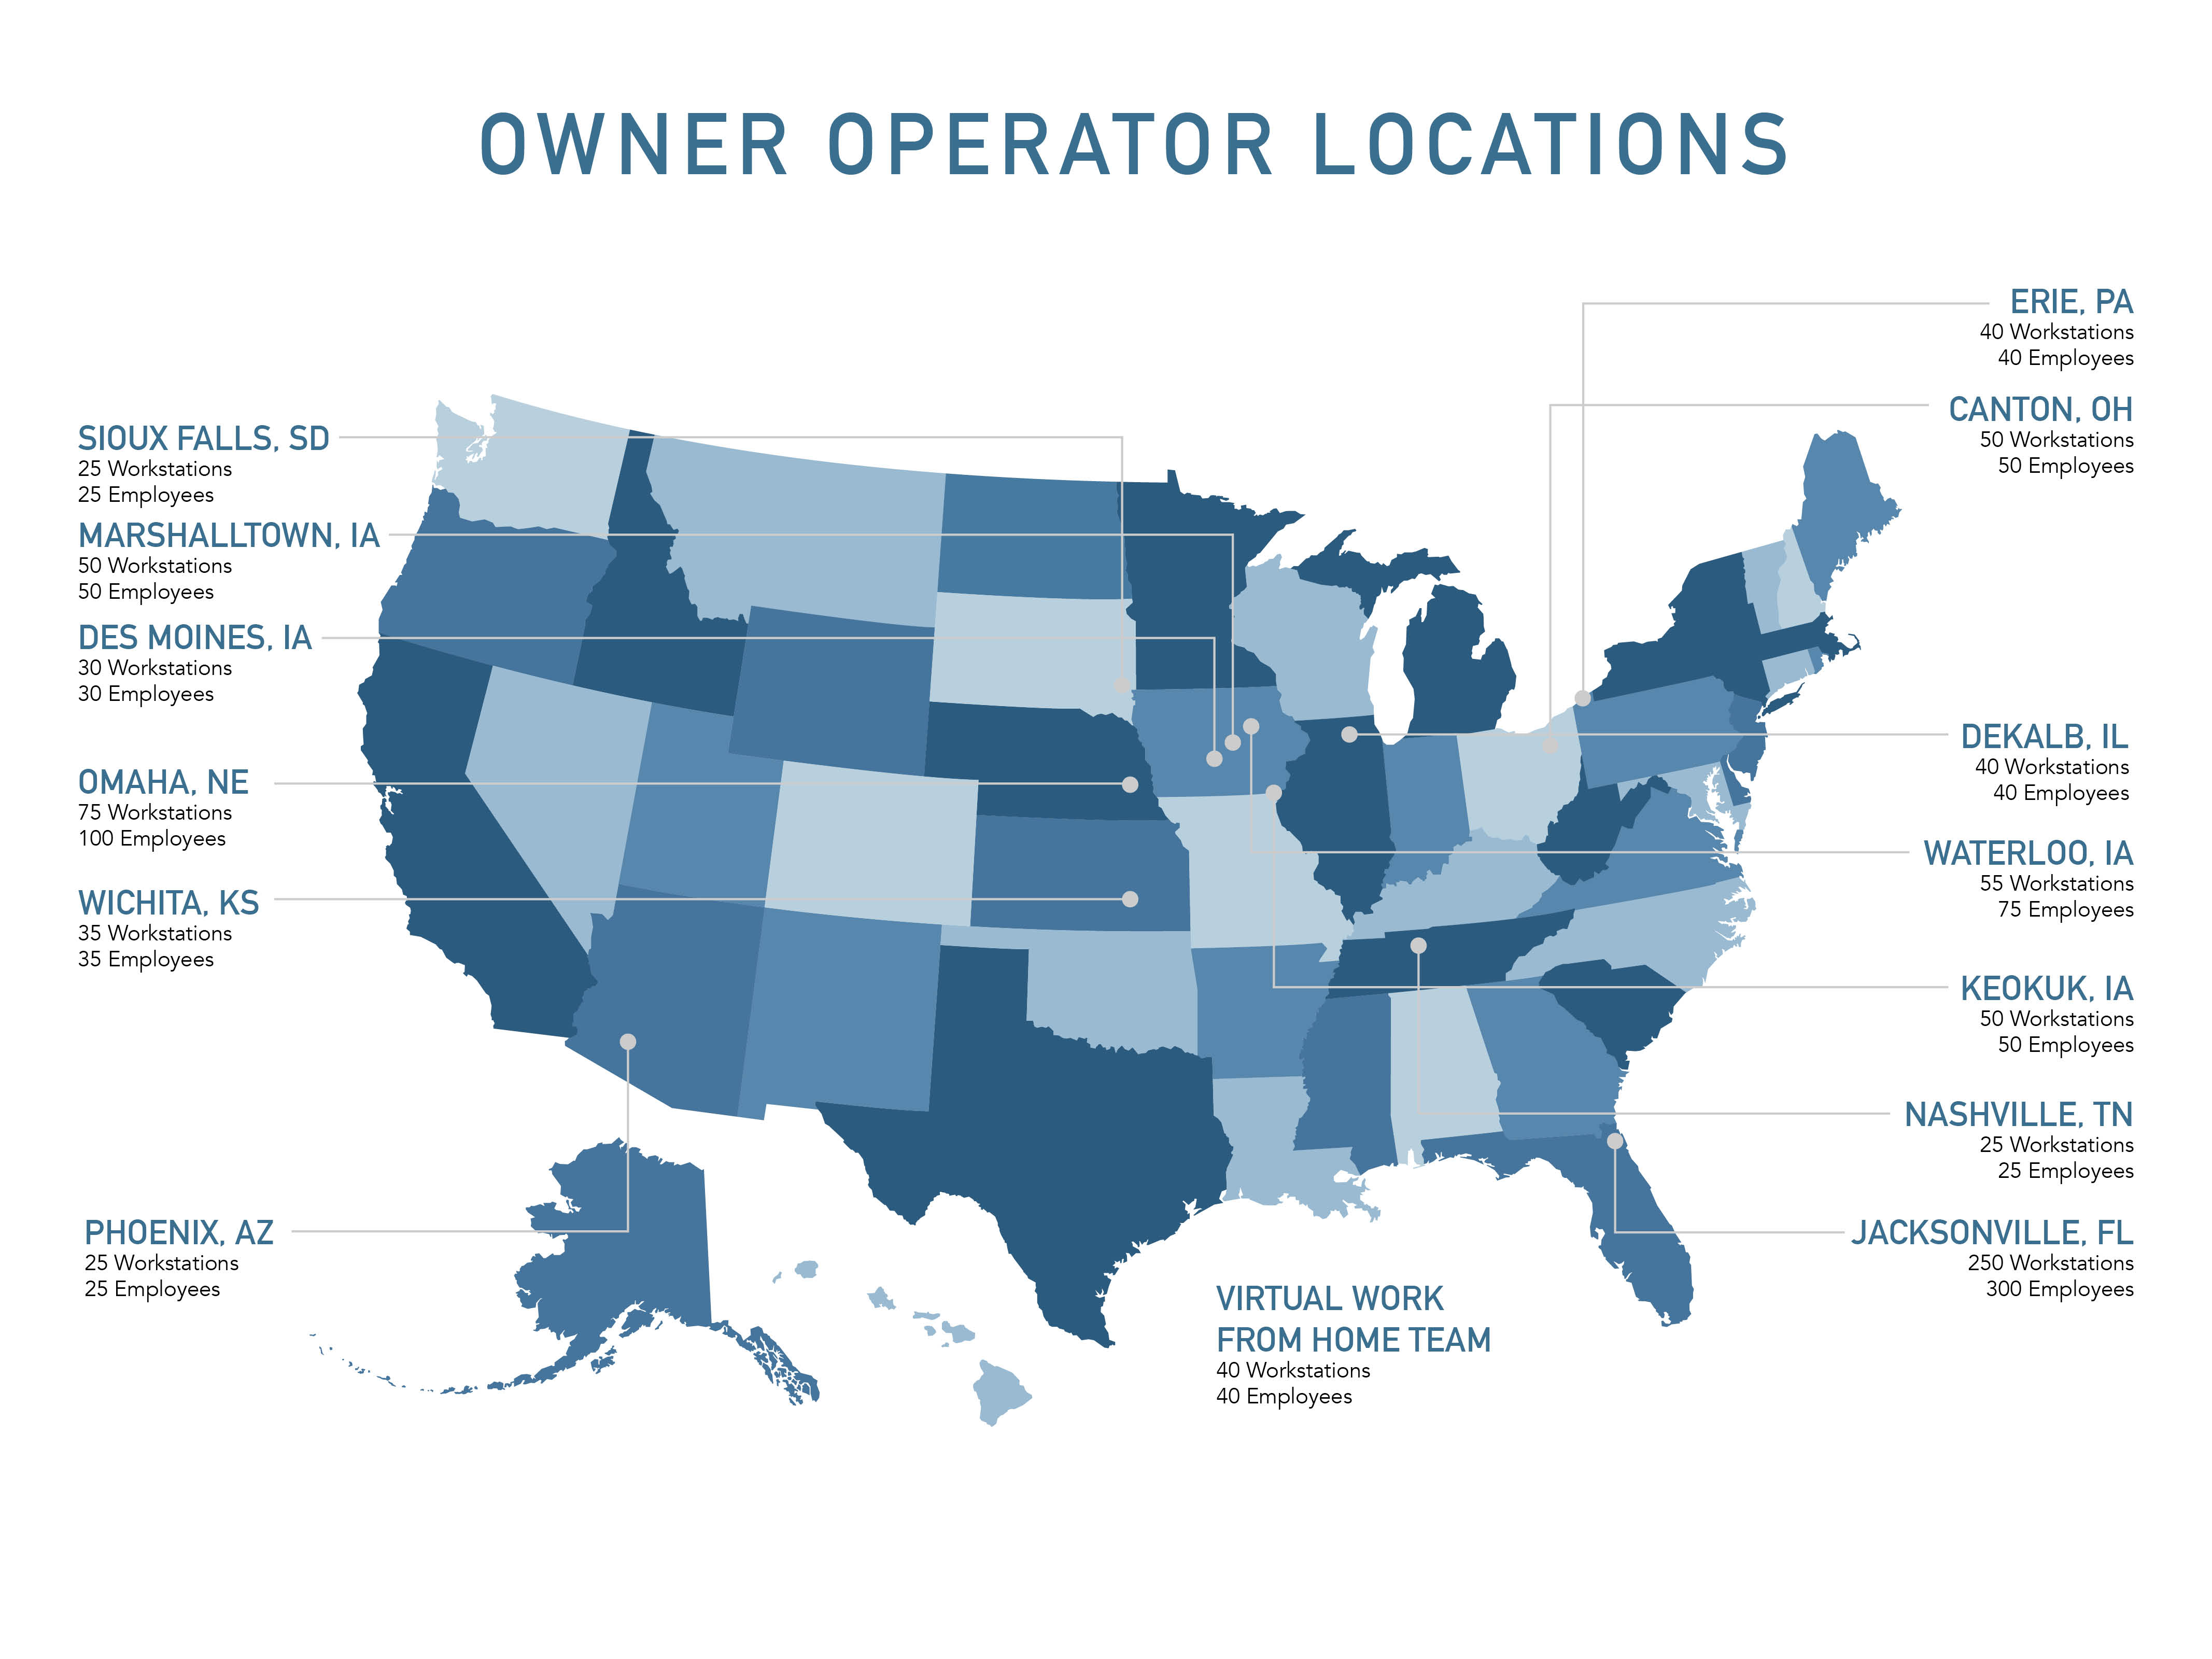 Owner Operator Location map